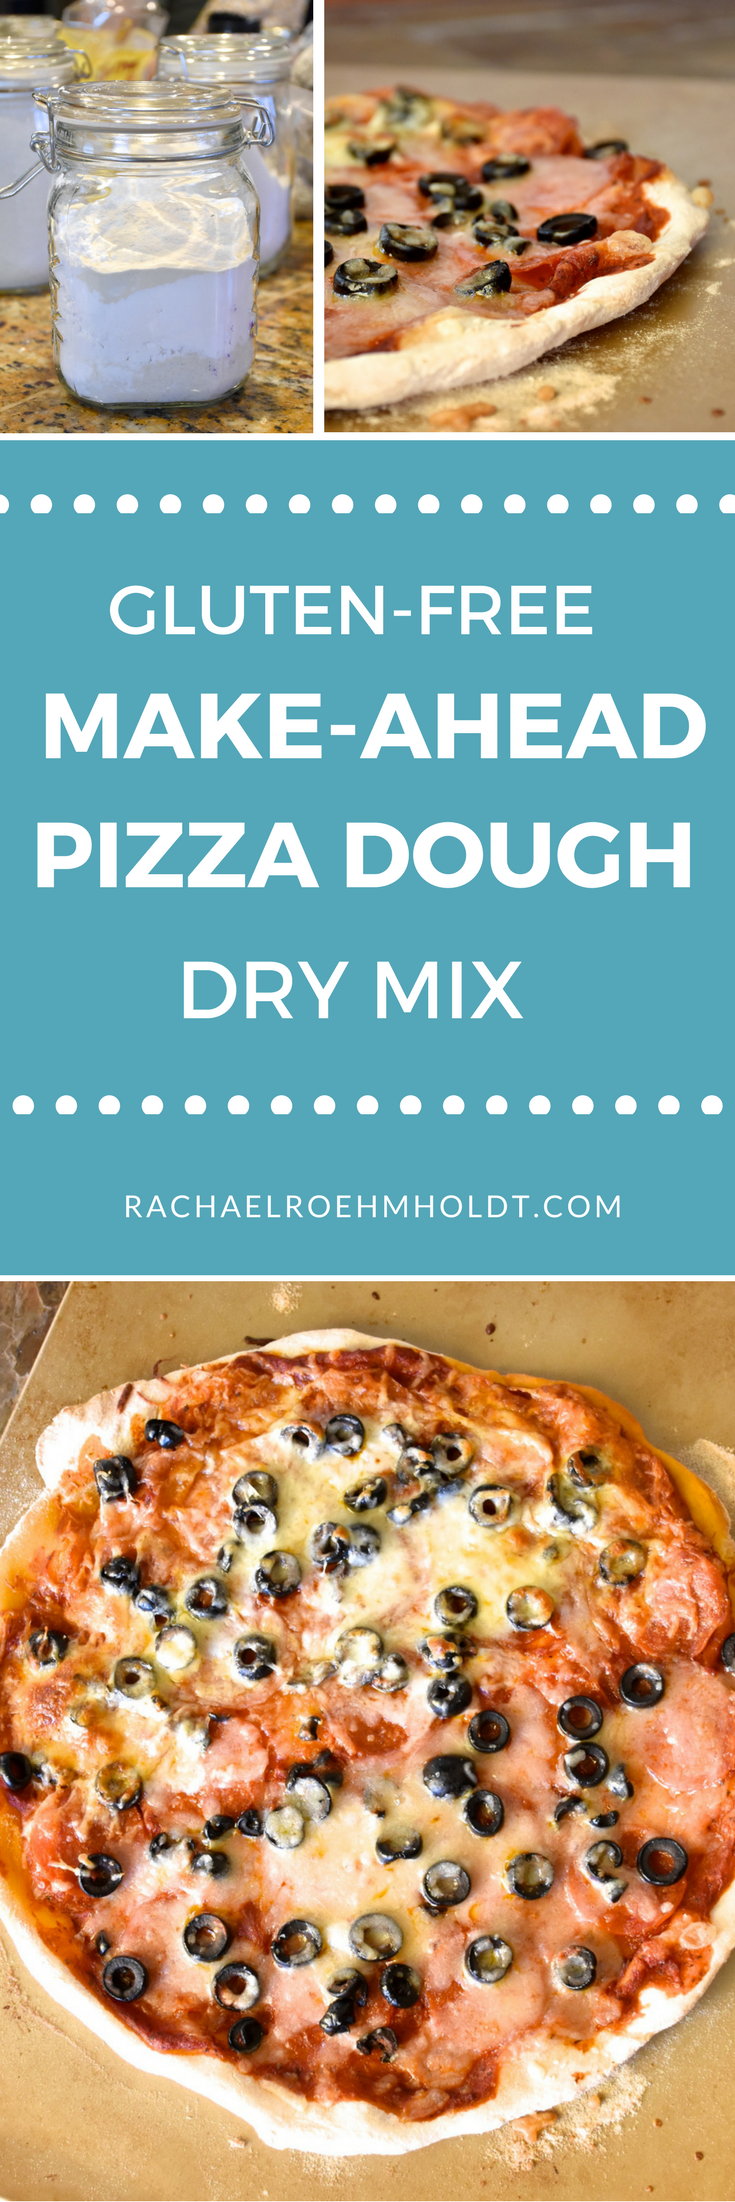 Learn how to create gluten-free make-ahead pizza dough dry mixes for an easy dinner that you can feel good about. Click through to read the full post.